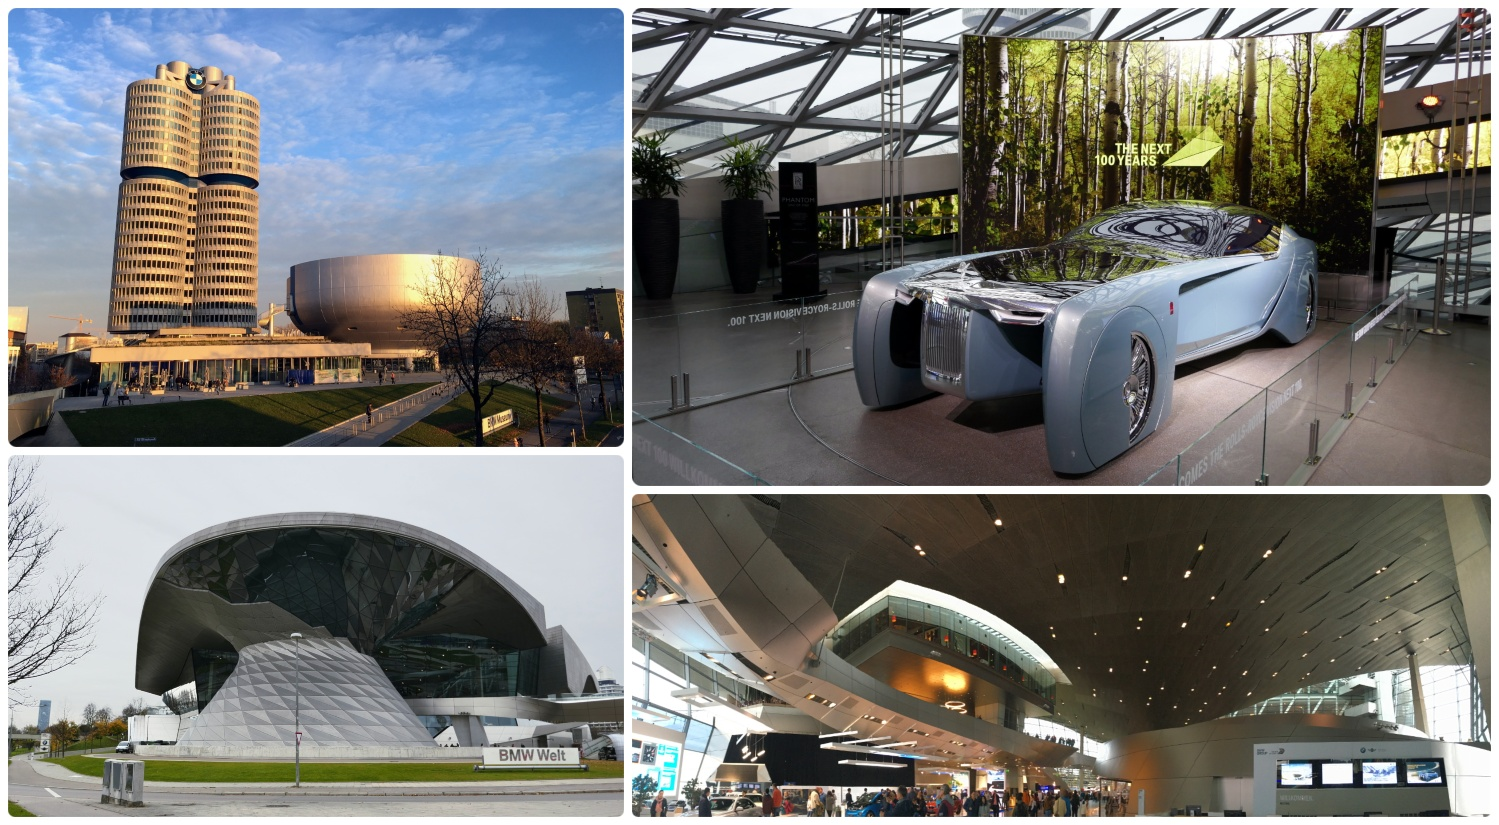 The BMW complex in Munich, Germany offers a free gallery (BMW Welt) and a paid museum (BMW Museum), both housed in beautiful modern buildings.